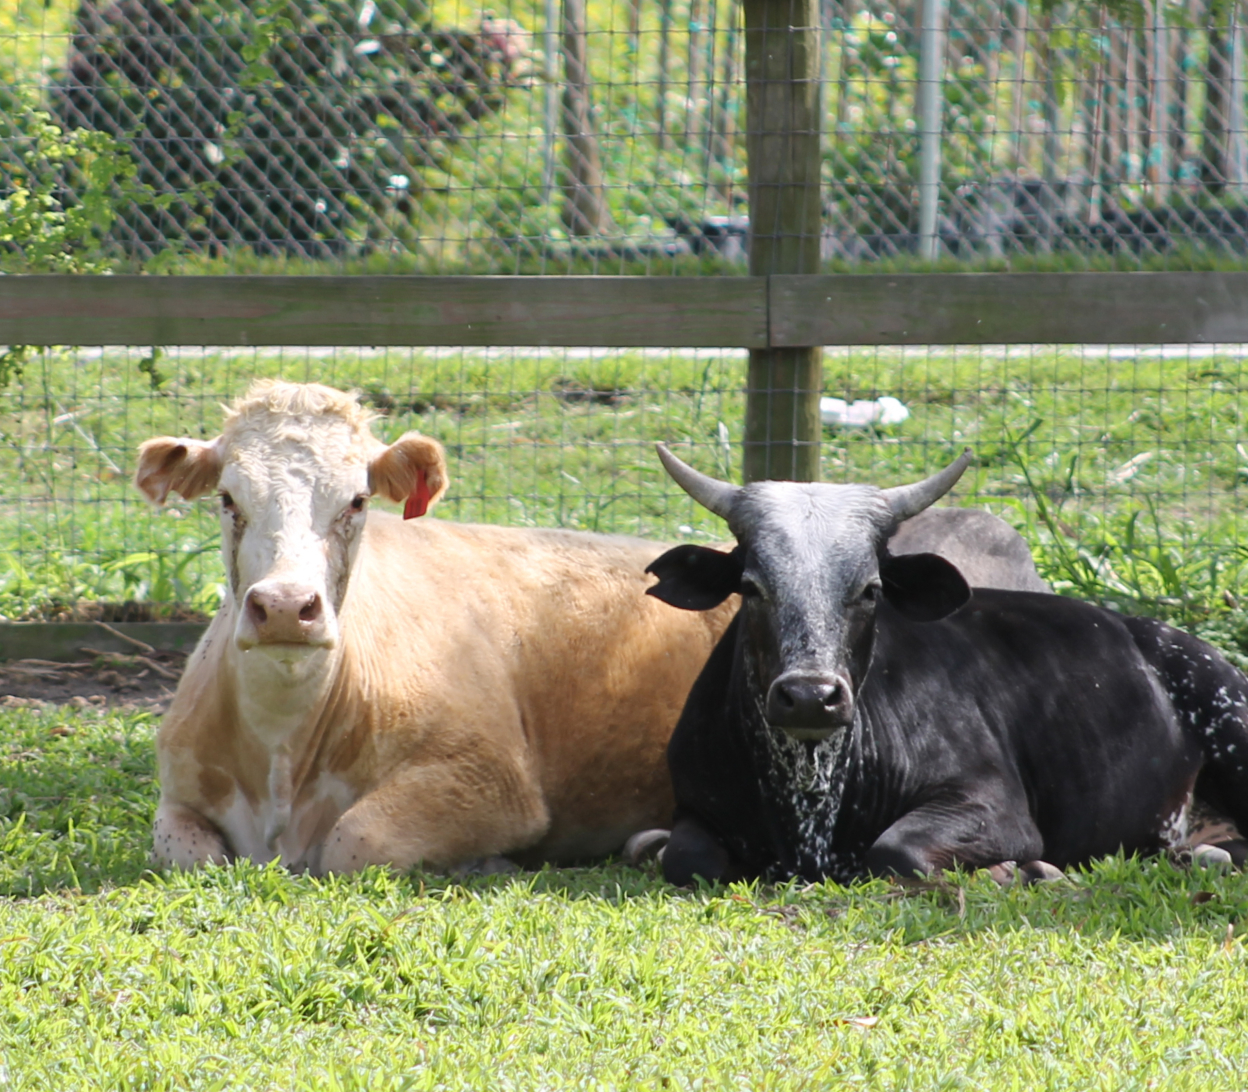 SFSPCA rescues livestock like these cows, everyday